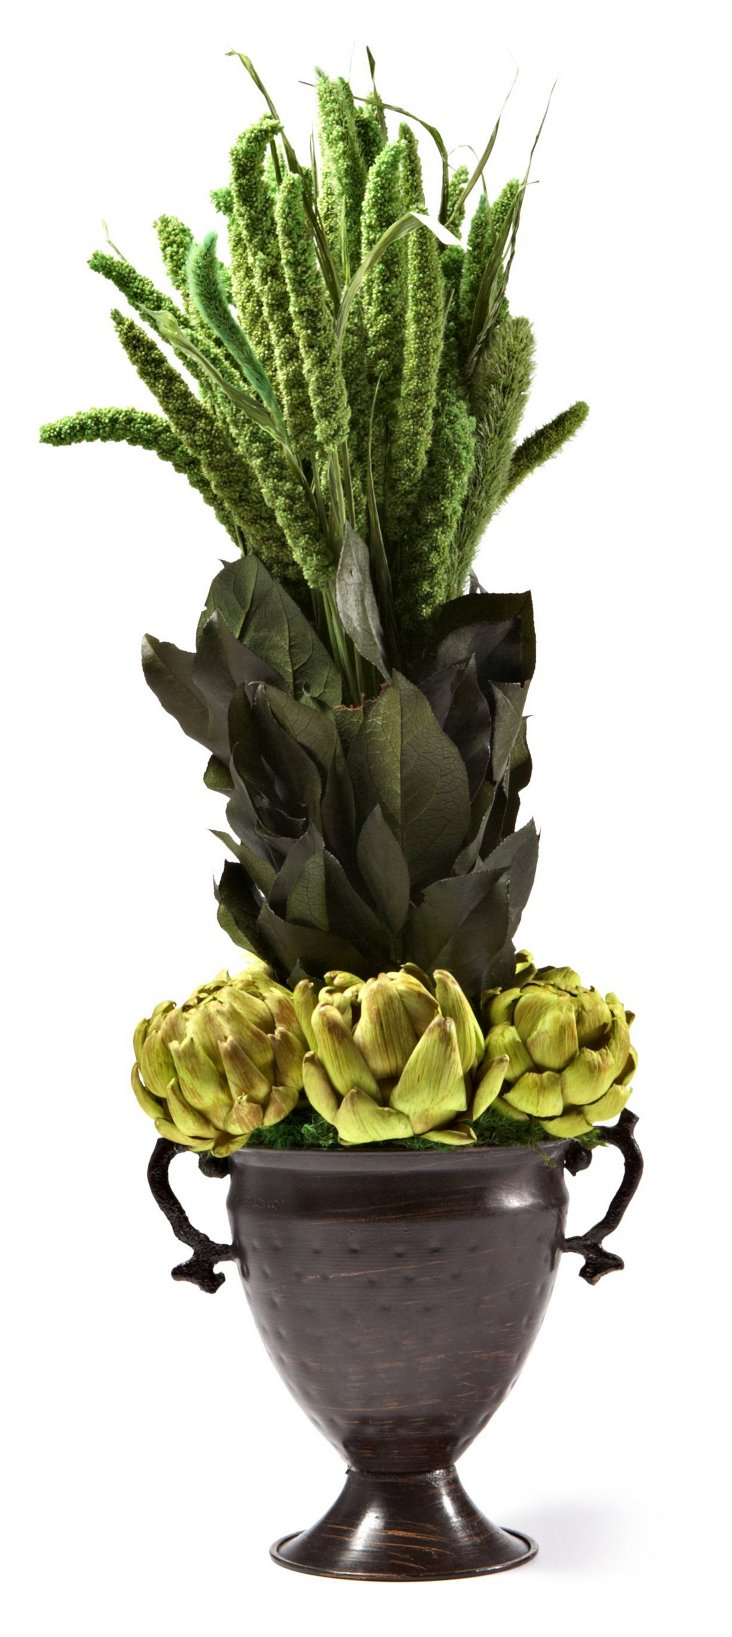 China Millet & Artichokes in Trophy Vase